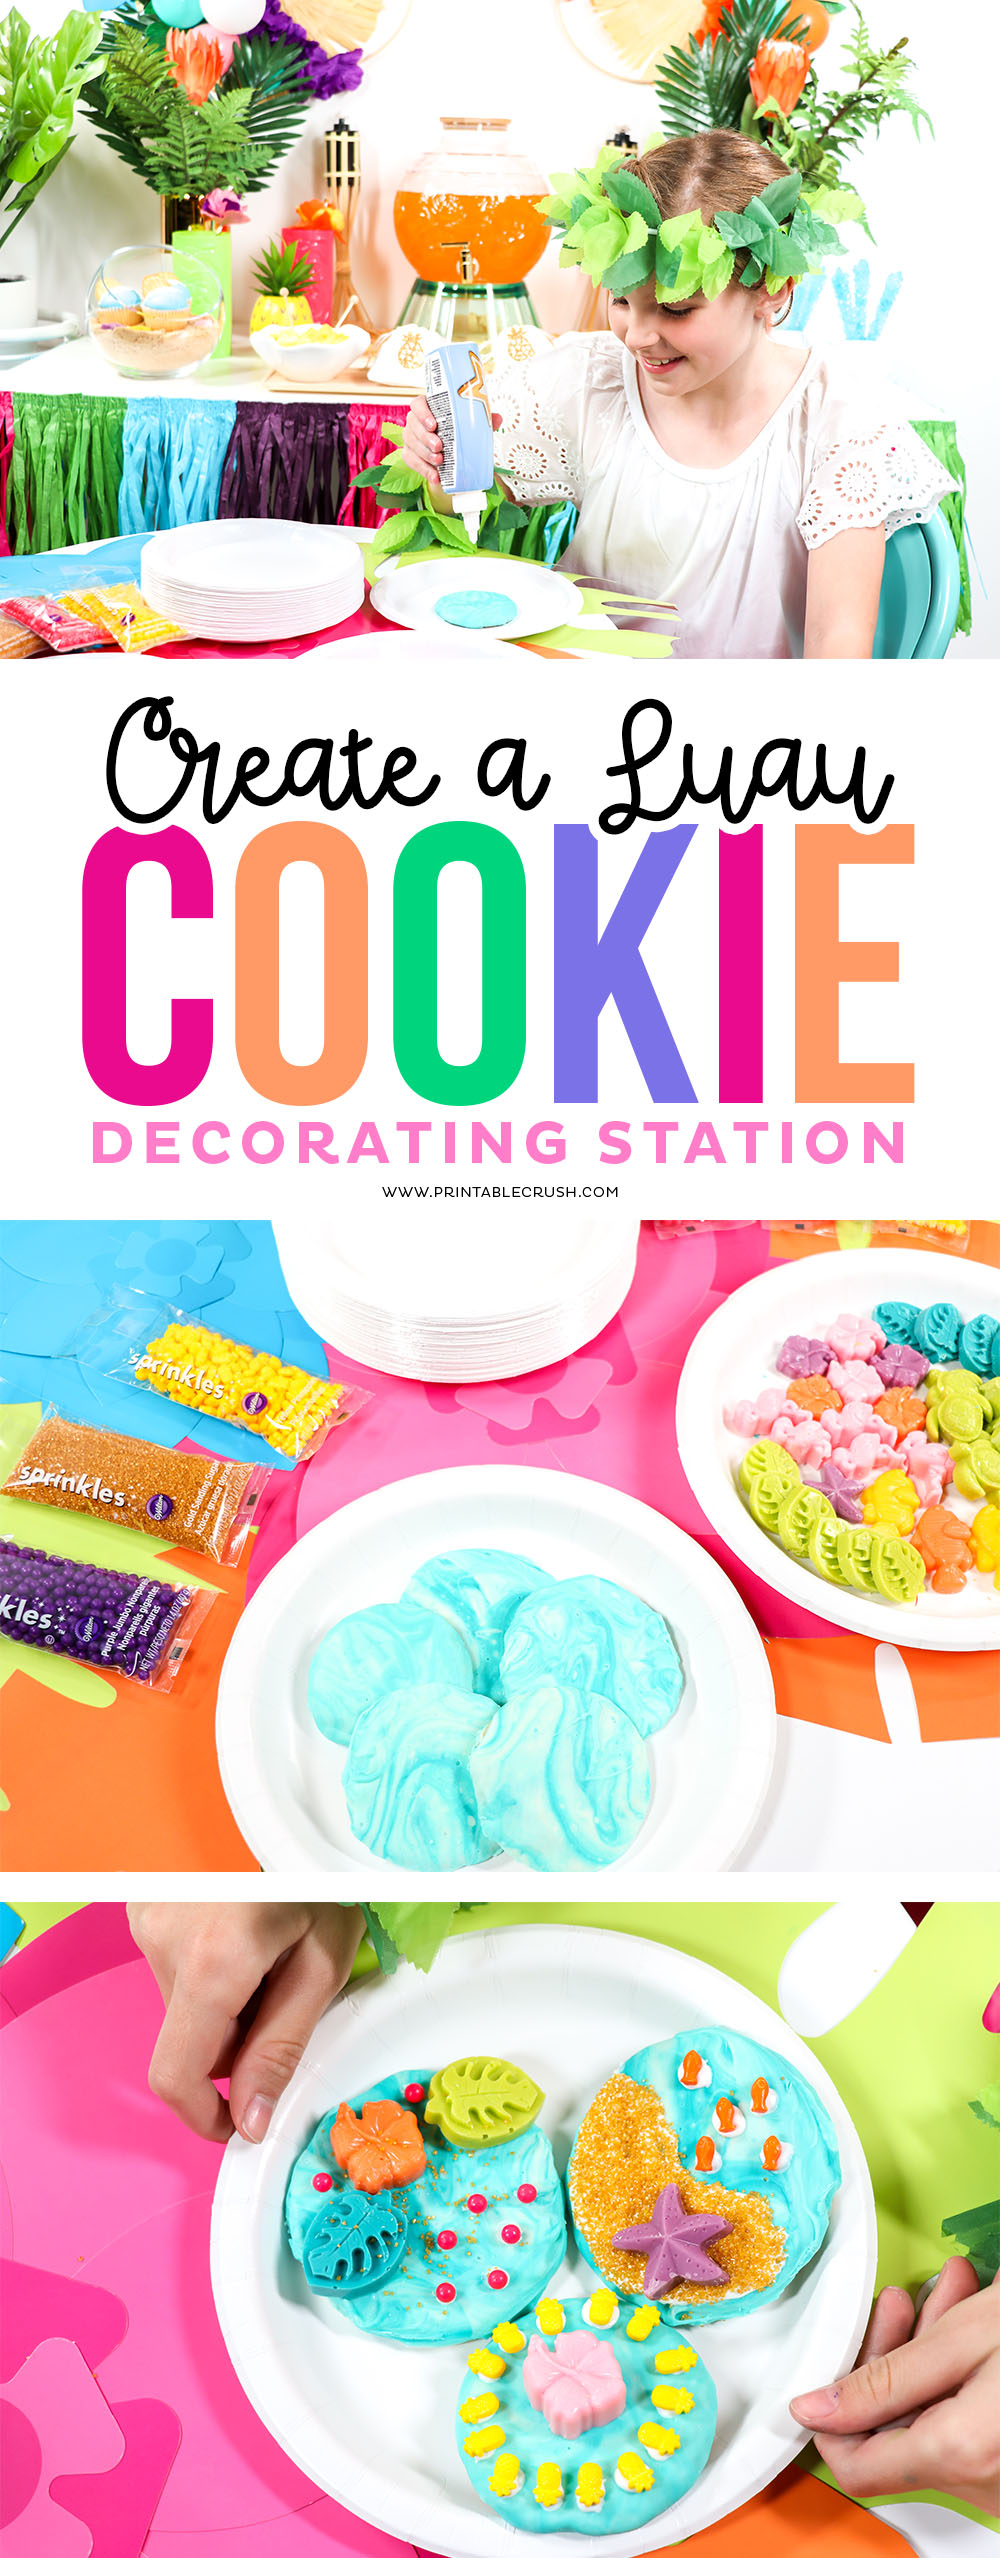 No cookie skills needed for this Luau Cookie Decorating Station! This is a super fun and easy activity for your summer luau party. #luauparty #kidpartyideas #luaupartyideas #hawaiianluau #cookiedecocorating #kidactivities #easypartyideas